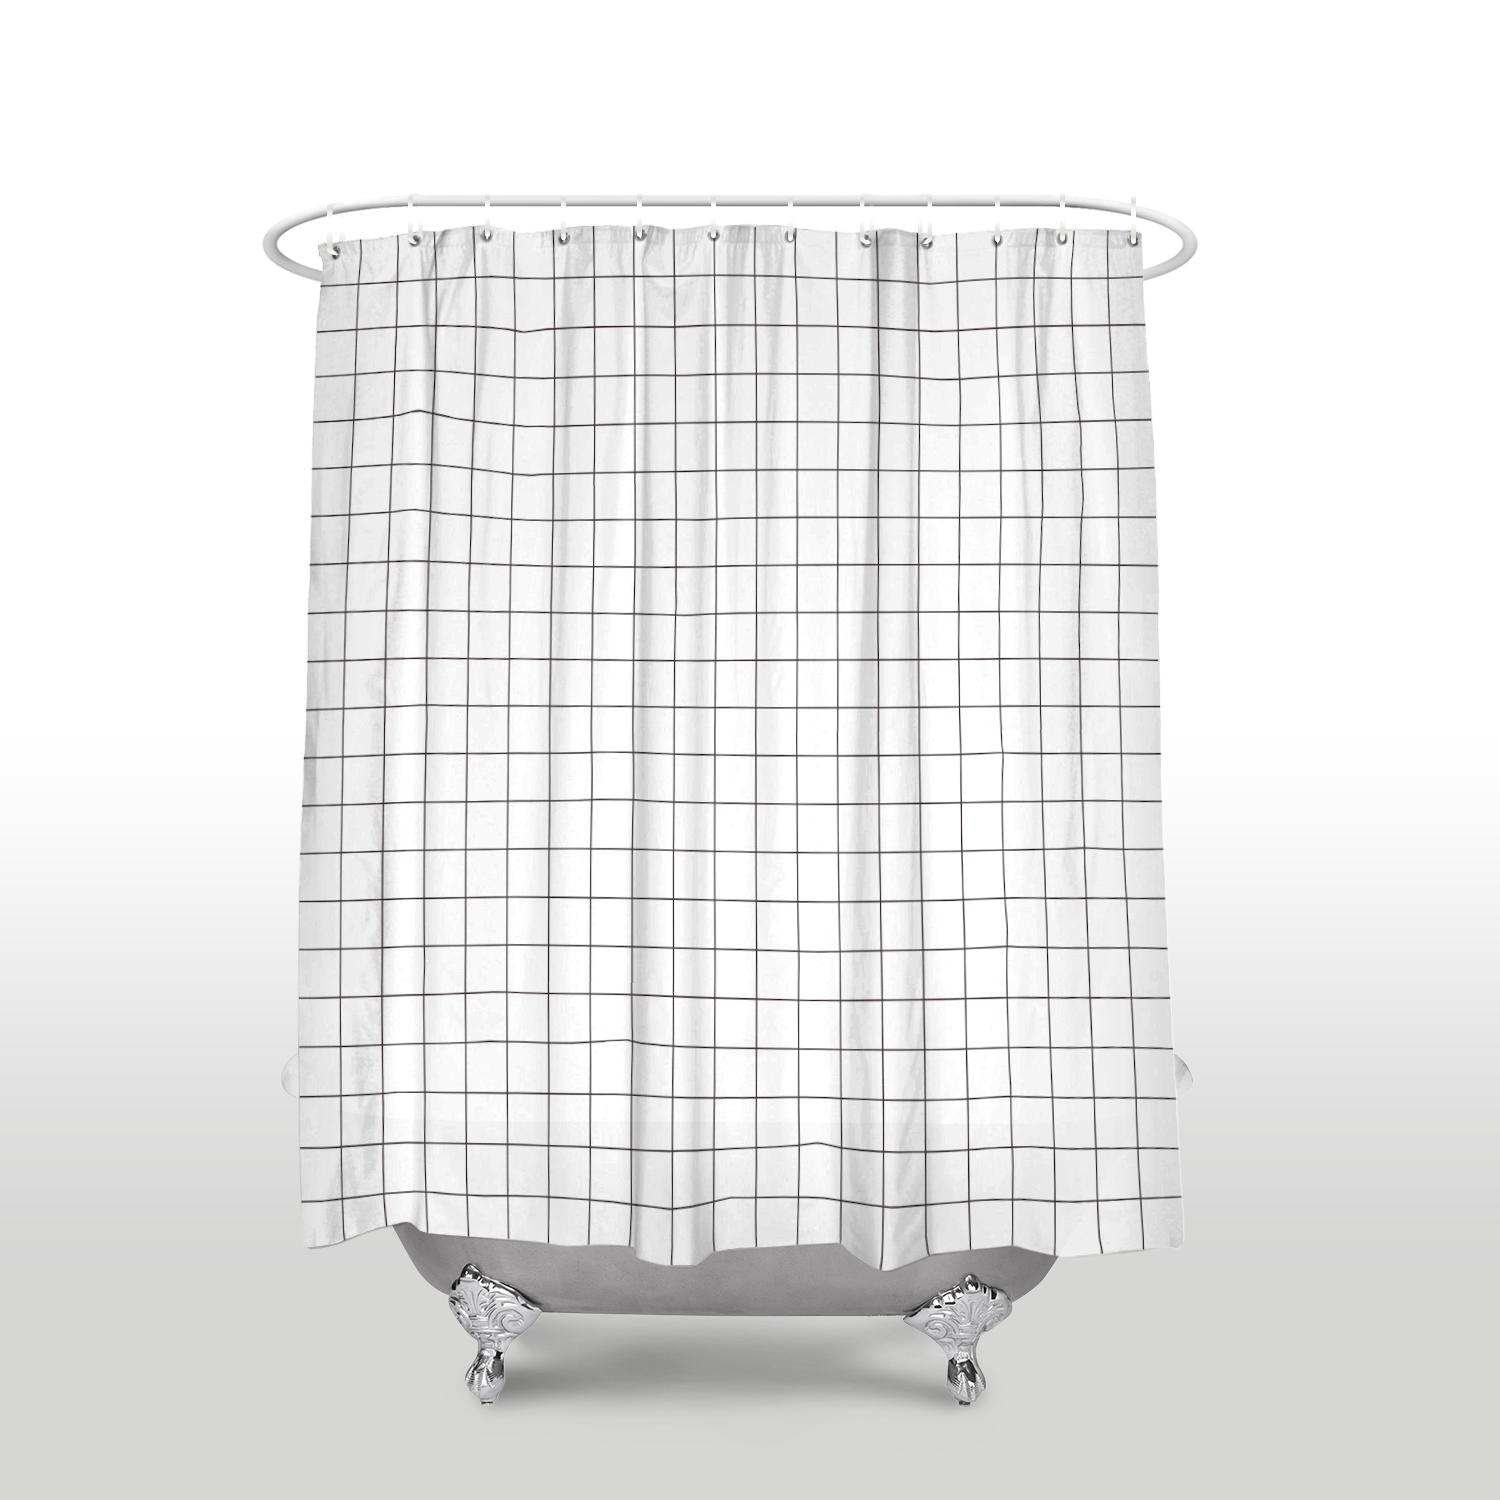 2019 New Waterproof Simple Grid Pattern Shower Curtain With Hooks Polyester Fabric Black White Plaid Bathroom Curtains For Home Decor From Waxer